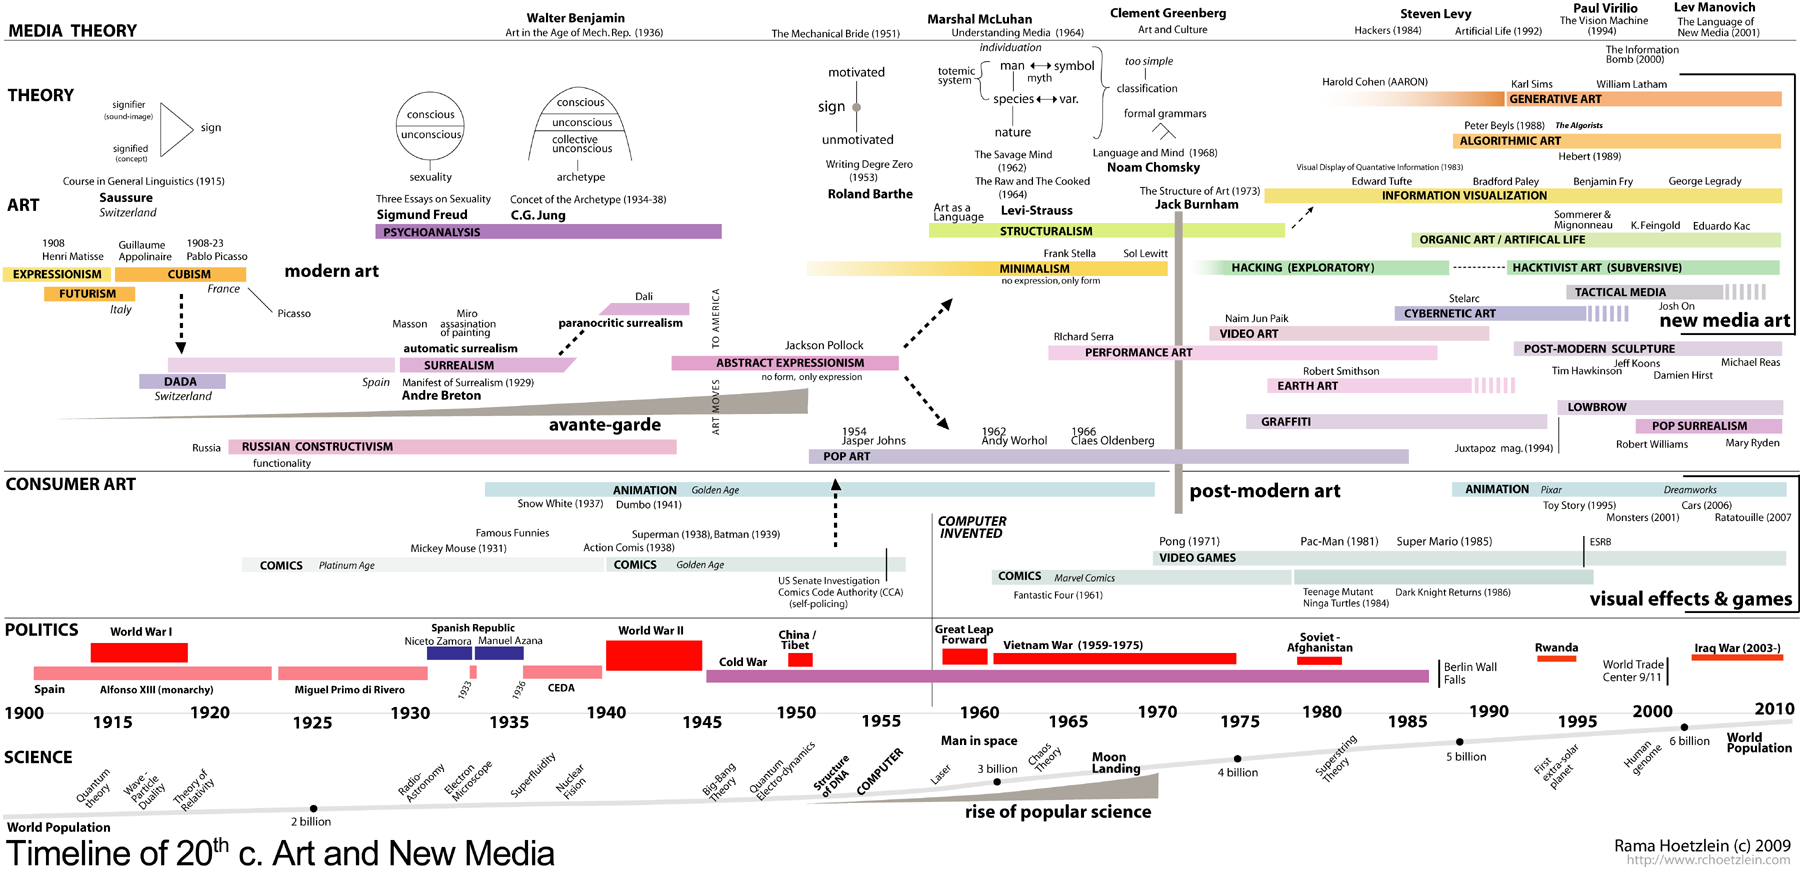 Timeline of 20th c. art and new media / Art Theory Map | Art ...